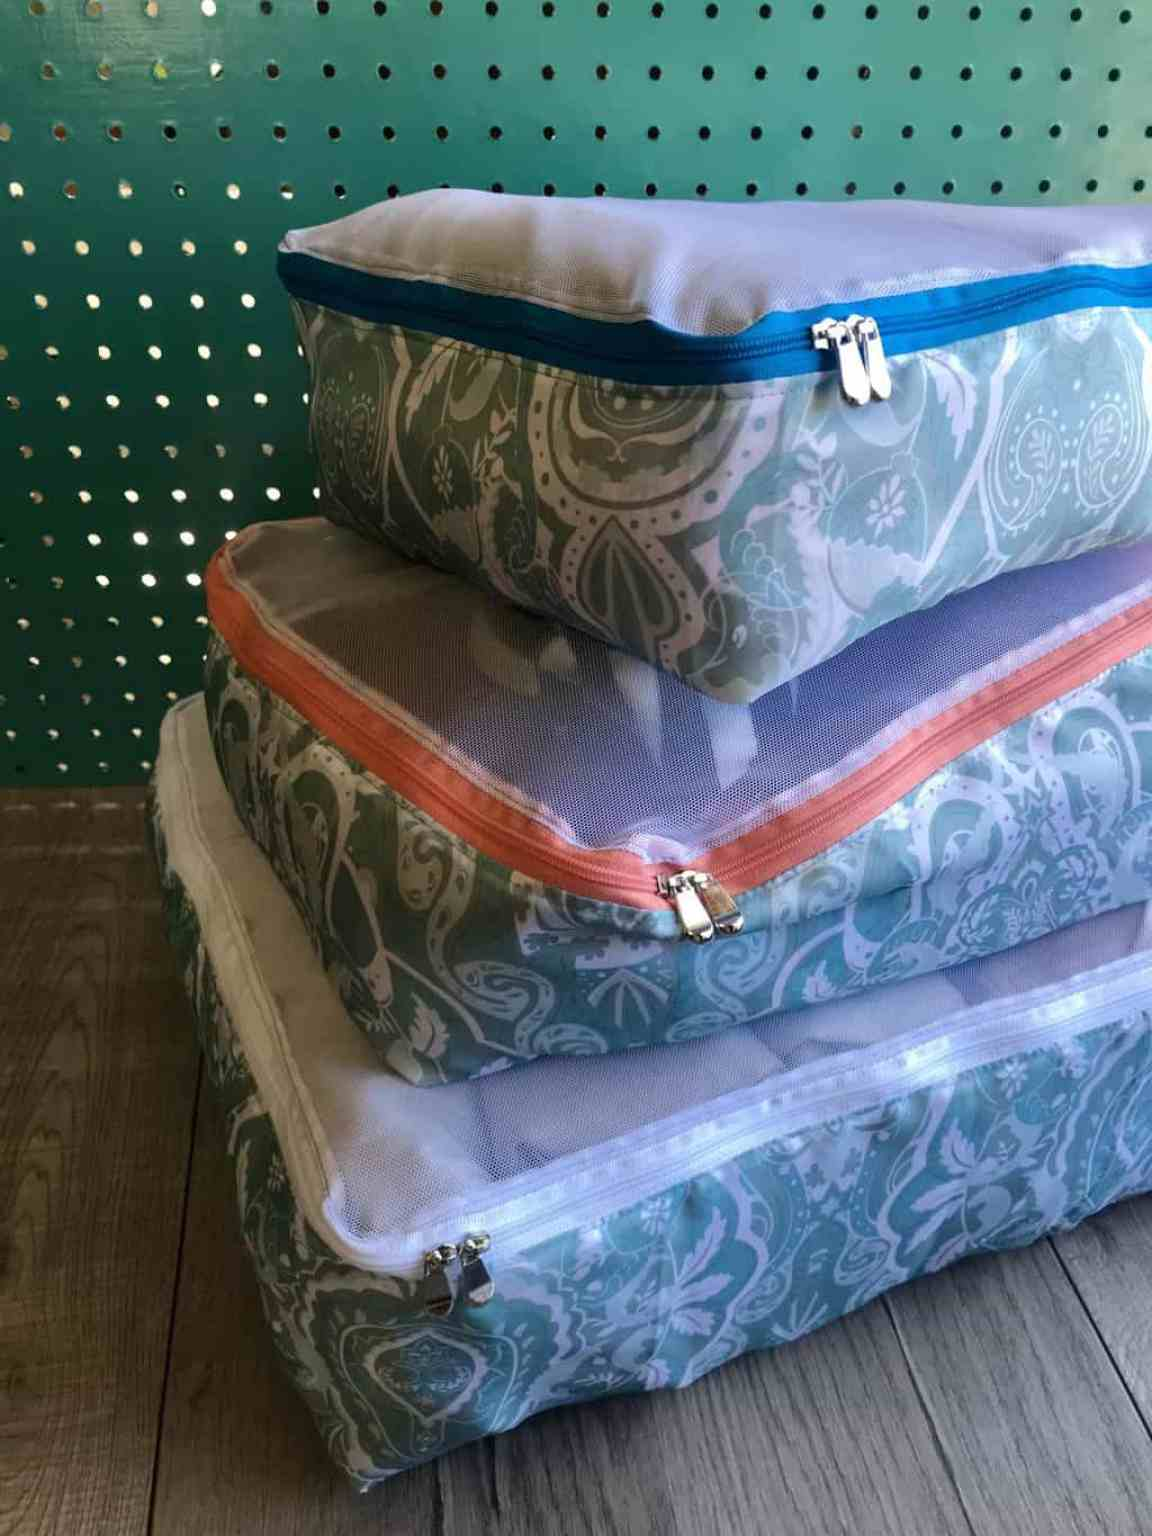 Sewing pattern: Packing cubes in 3 sizes